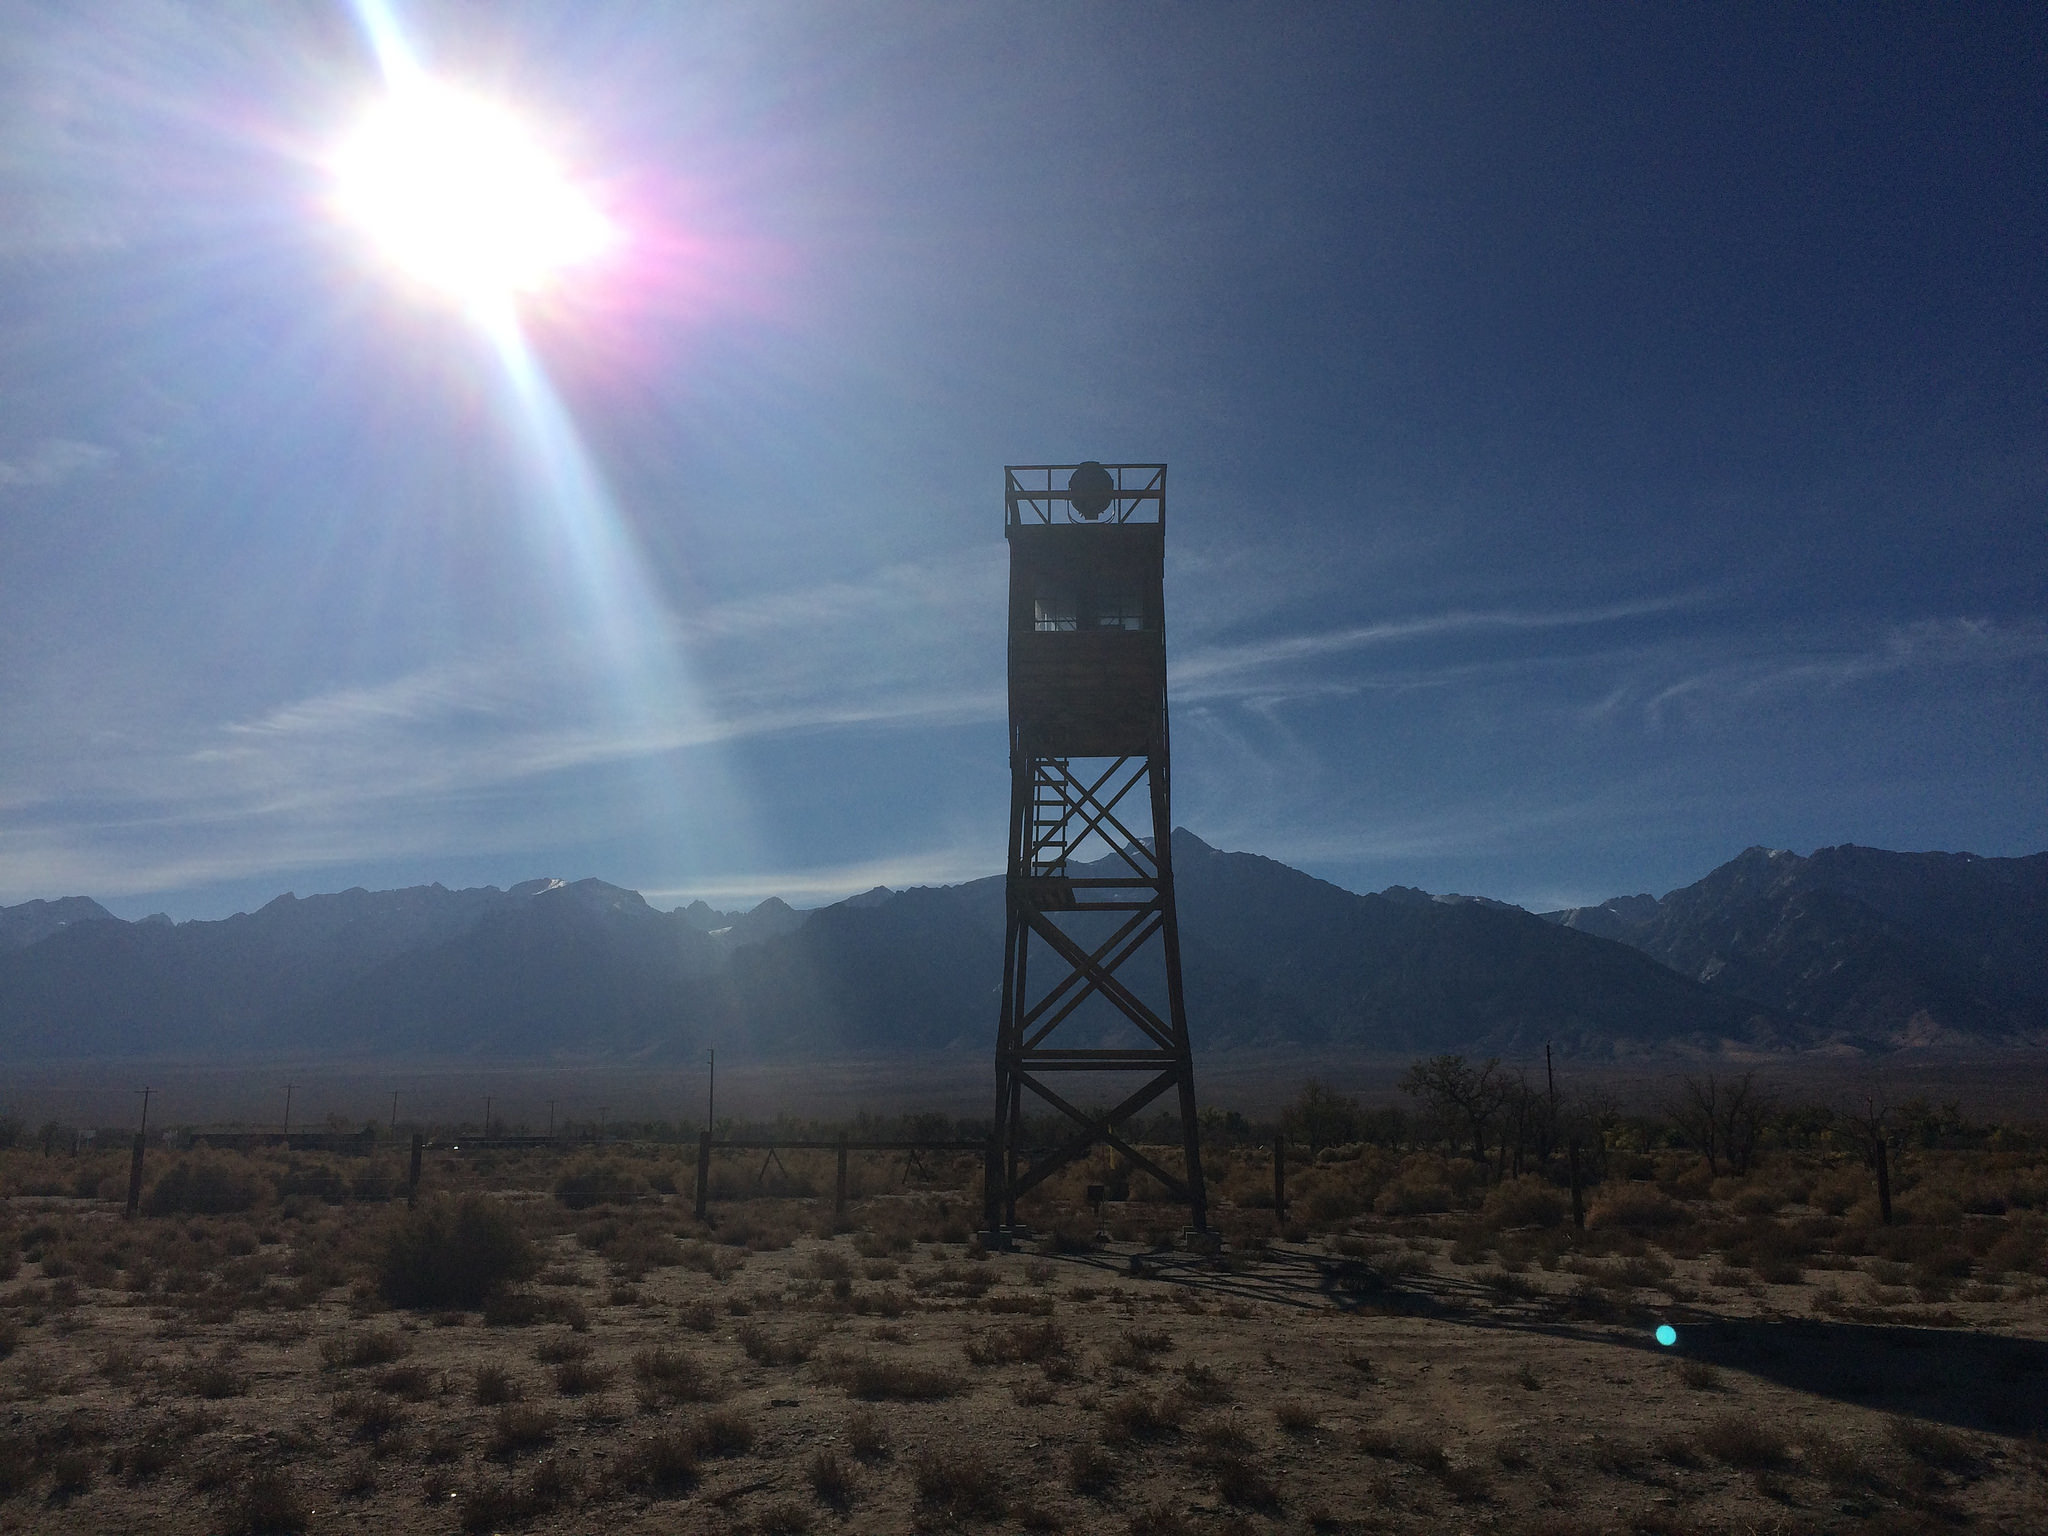 A reconstructed guard tower marks the entrance to Manzanar, the former Japanese American internment site in the Owens Valley.